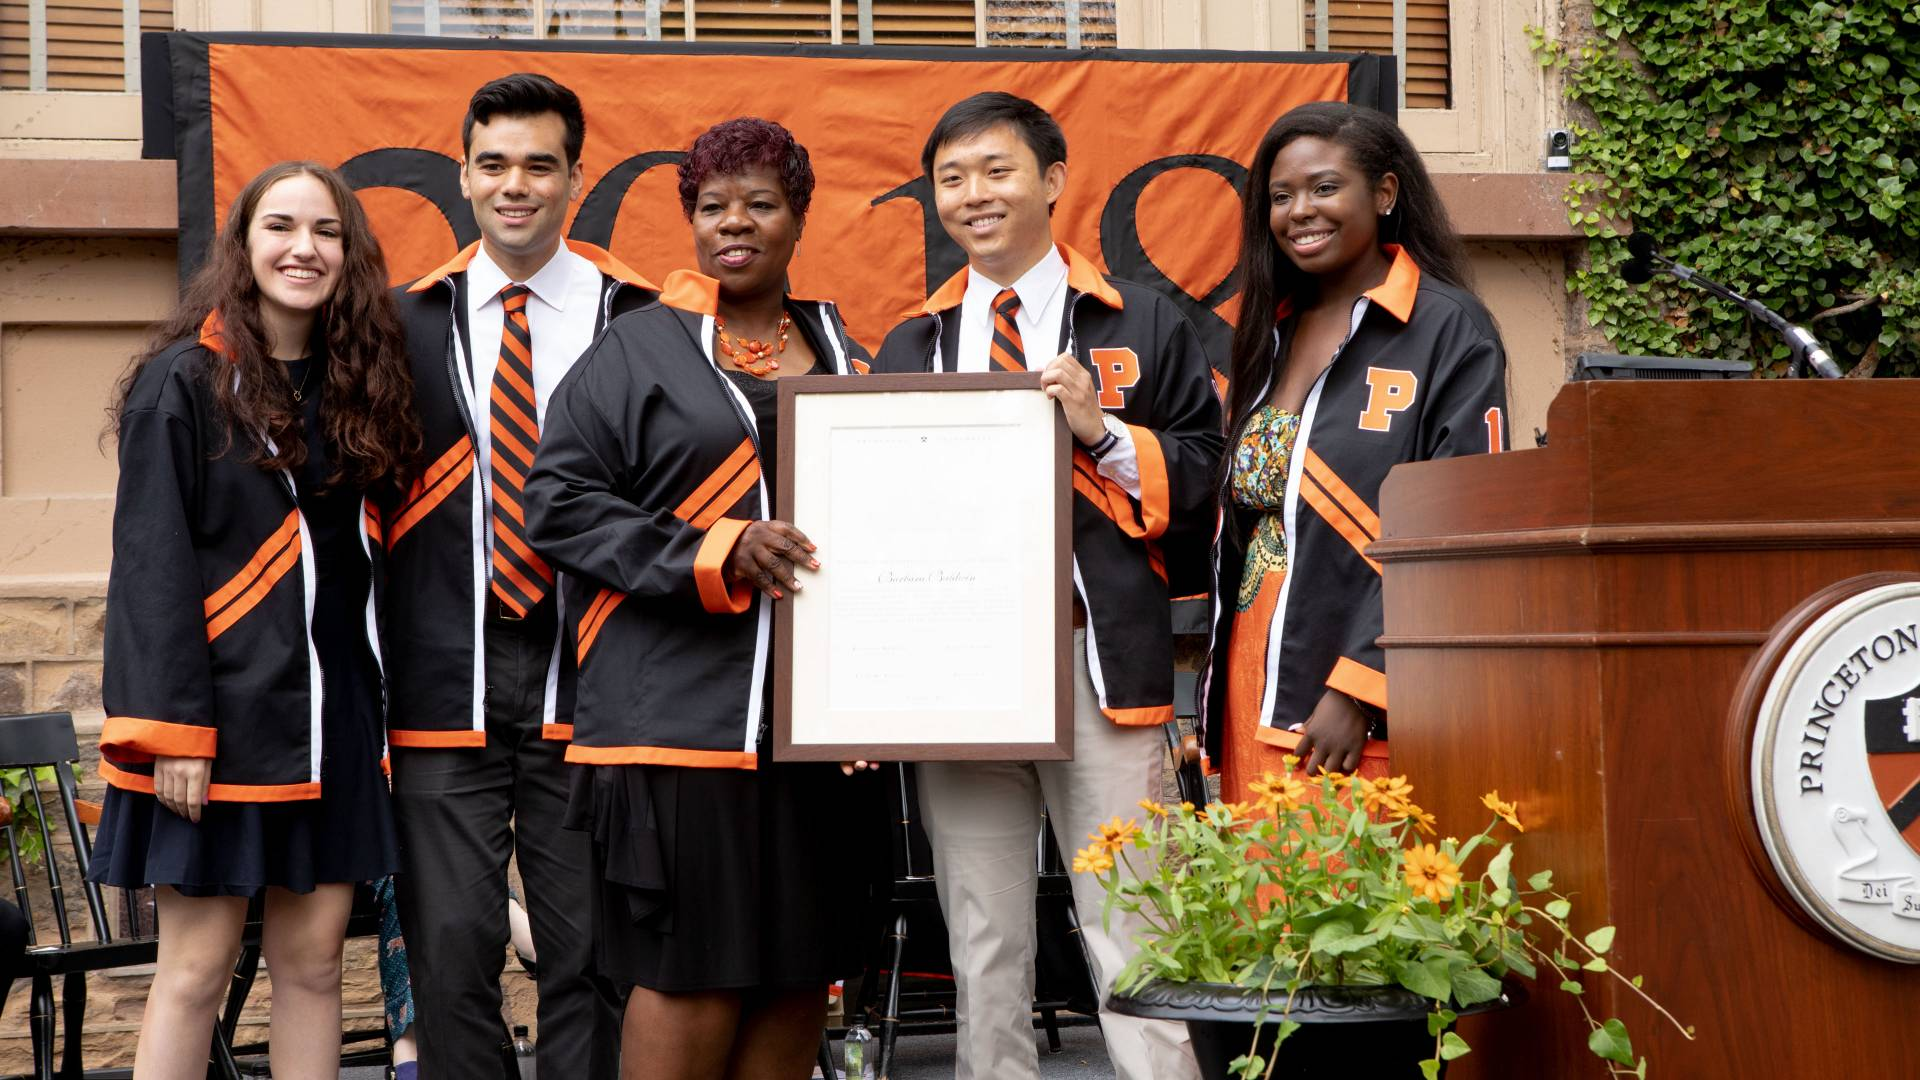 Barbara Baldwin receiving Class of 2018 Class Day jacket and certificate during Class Day ceremony